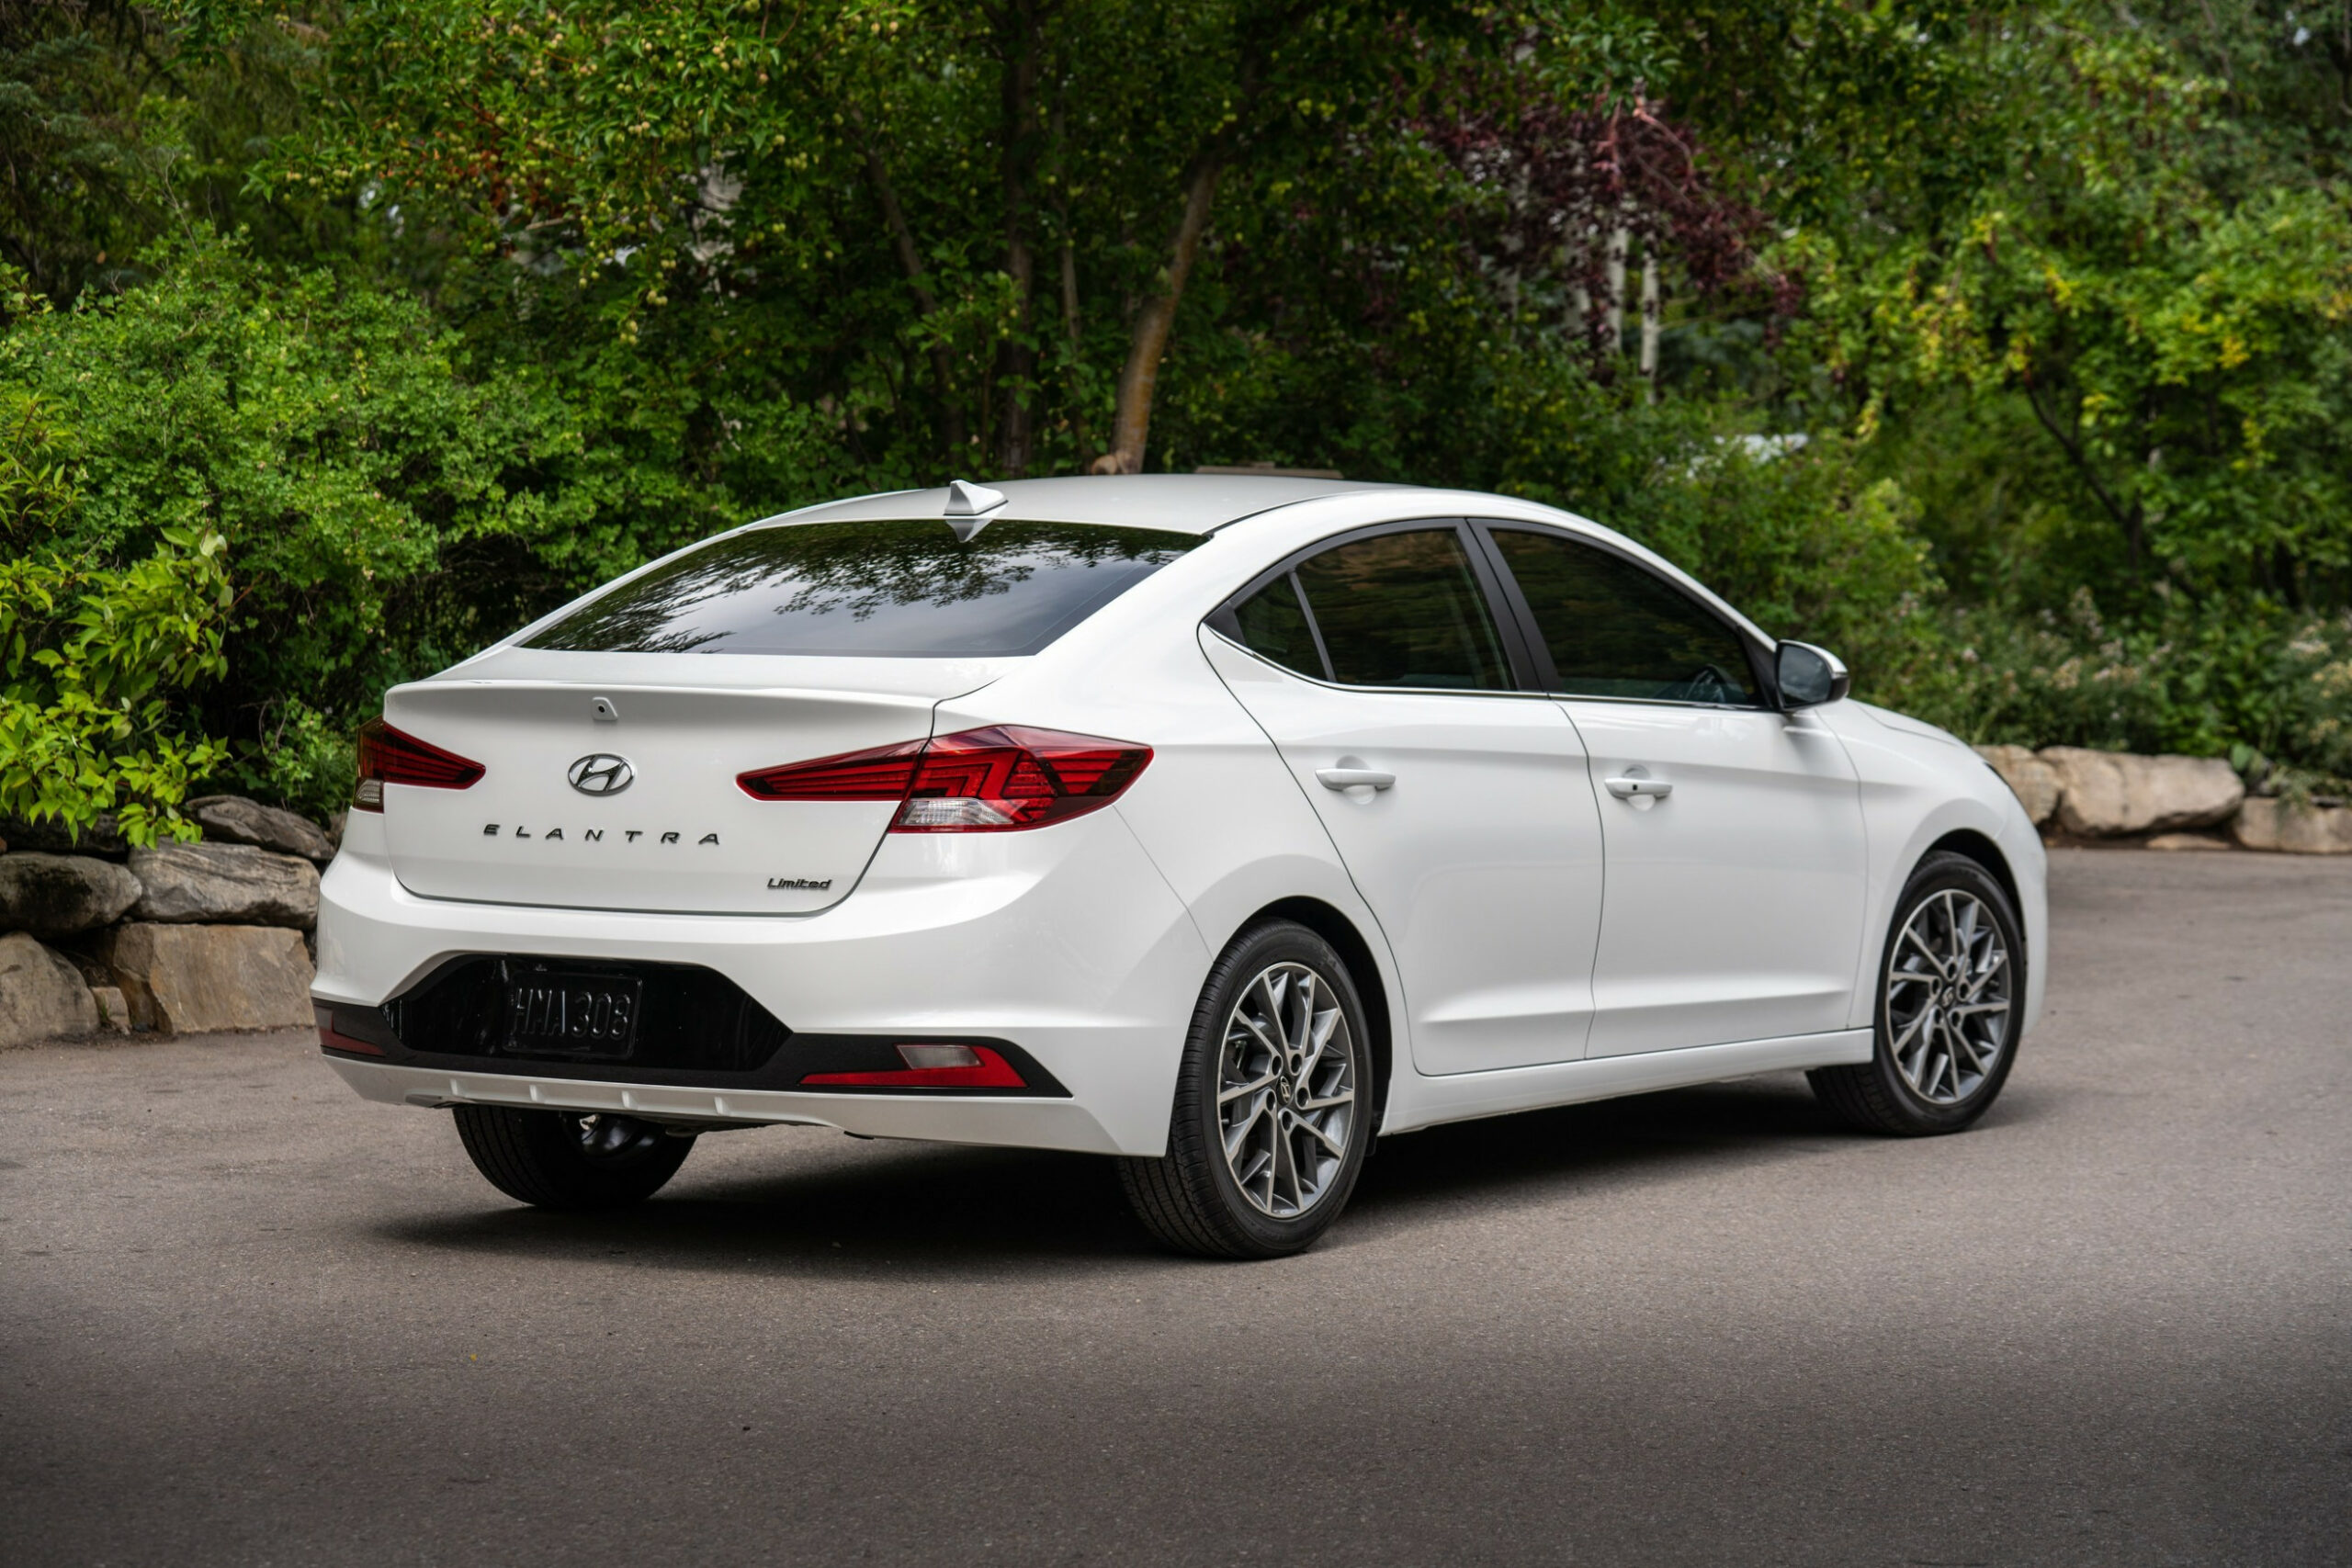 5 Hyundai Elantra Improves Fuel Economy and Safety | 2020 Hyundai Elantra Gas Mileage